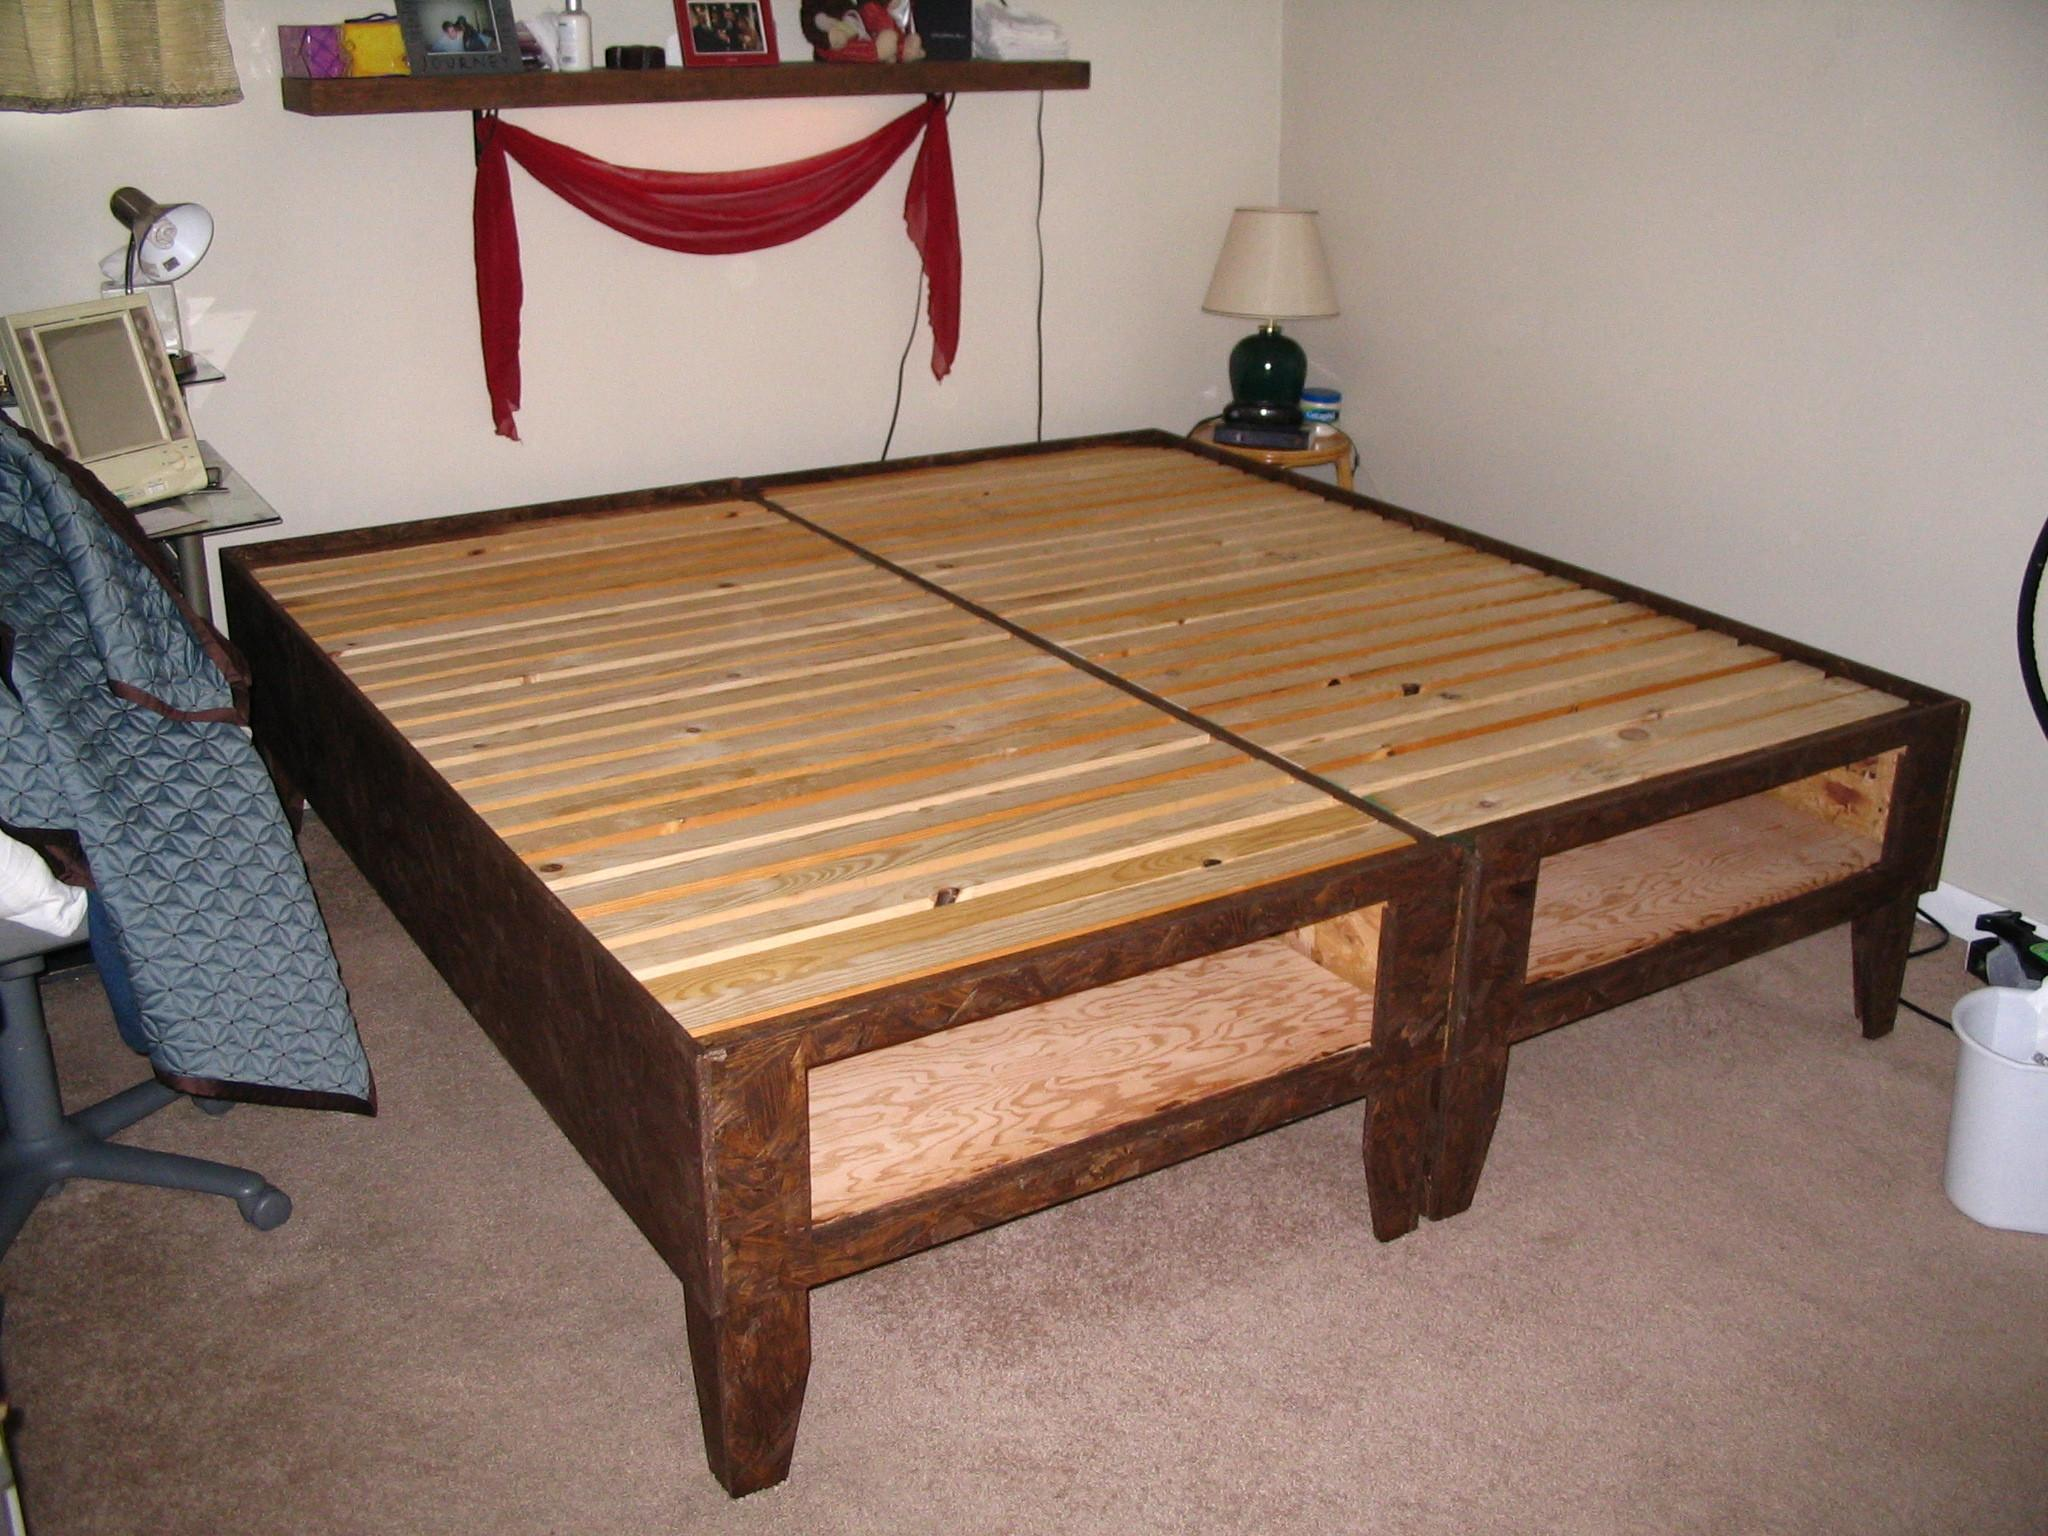 Diy Bed Storage Under 100